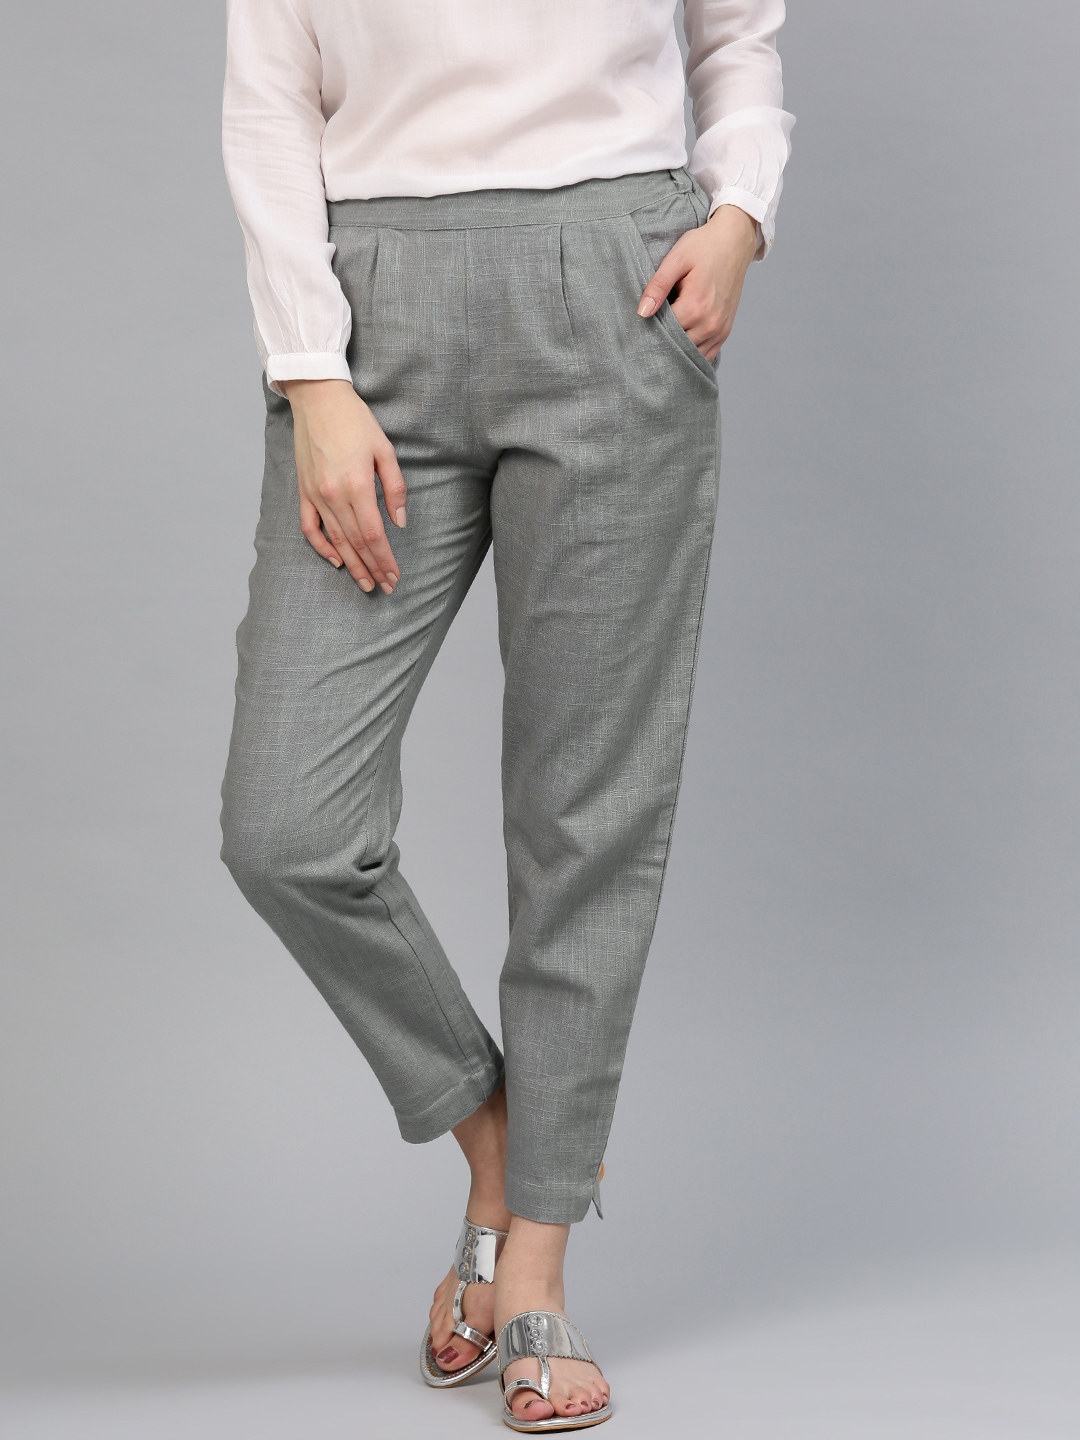 Women s Trousers - Shop Online for Ladies Pants   Trousers in India ... 70c3ab53f51f